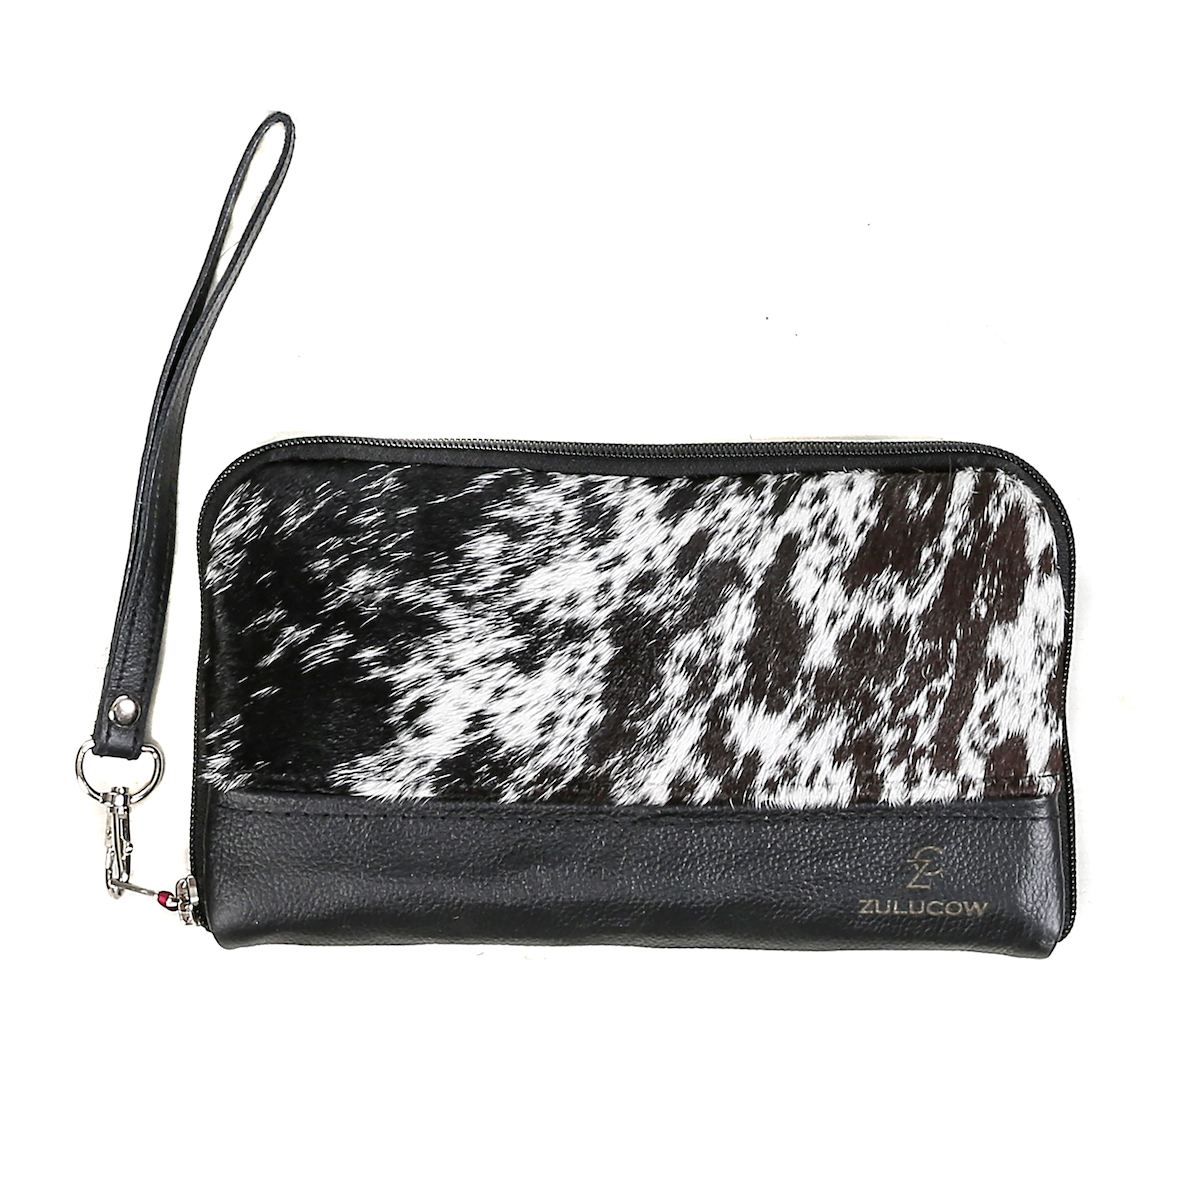 cowhide purse, wallet, travel wallet, clutch, leather purse, cowhide clutch, sustainable fashion, slow fashion, sustainable, handmade purse, artisan-made, ethically made, christmas gifts for her